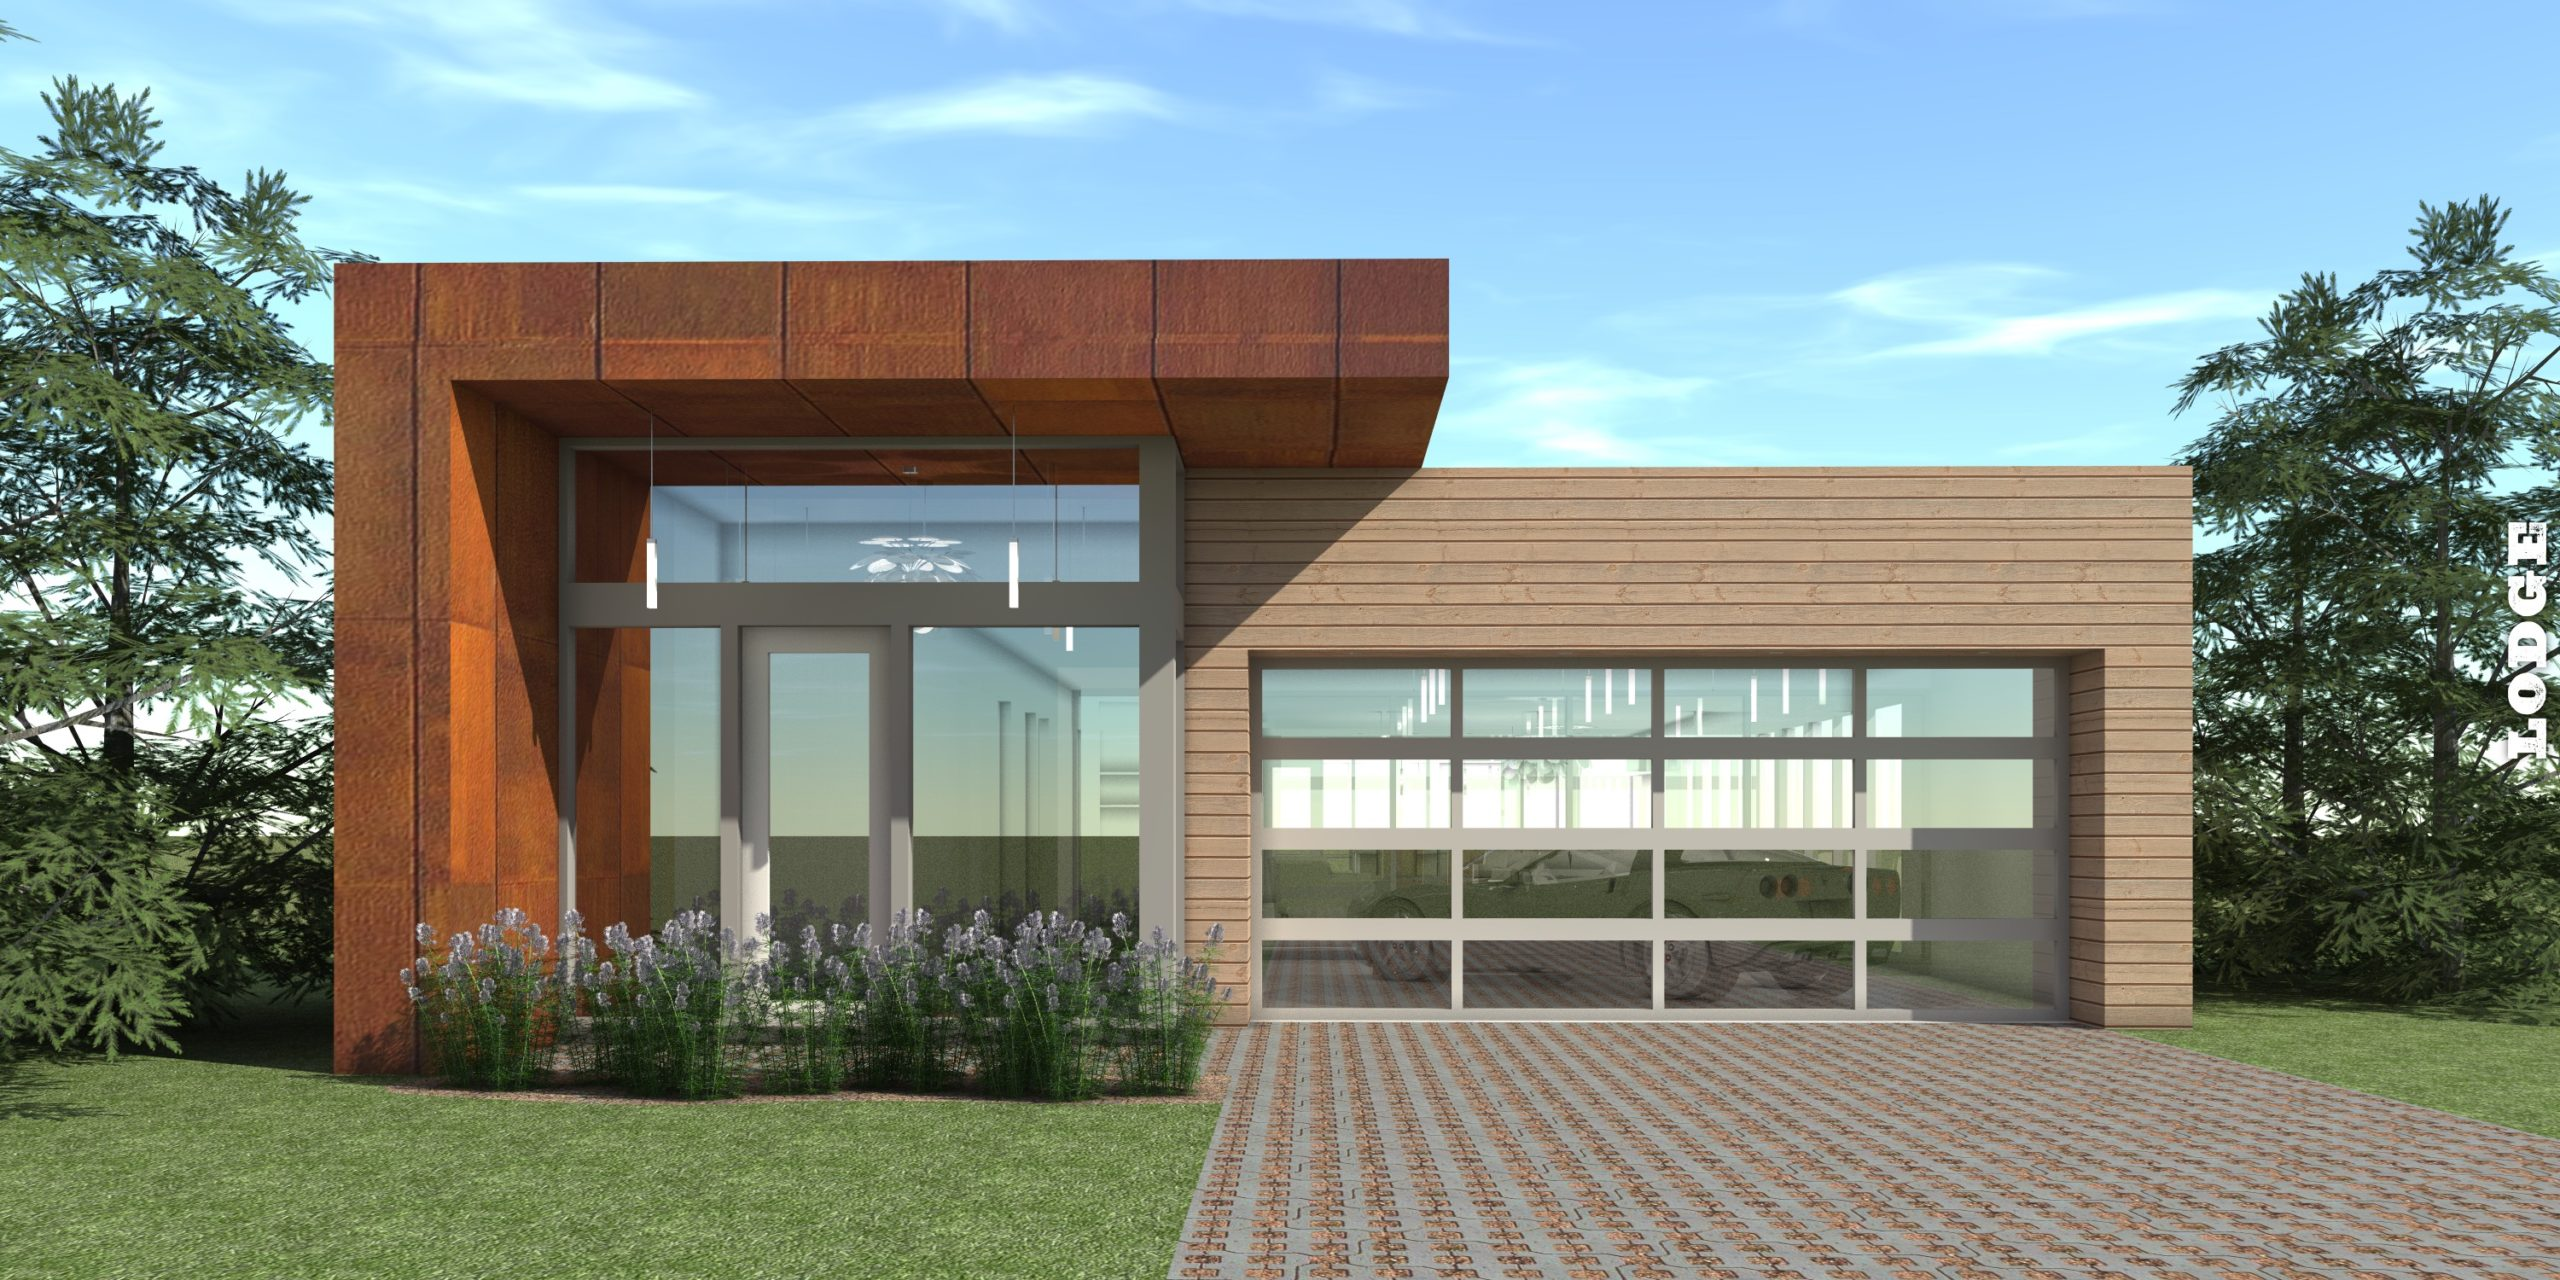 Narrow Modern with Car Showroom. 4 Bedrooms. Lodge by Tyree House Plans.